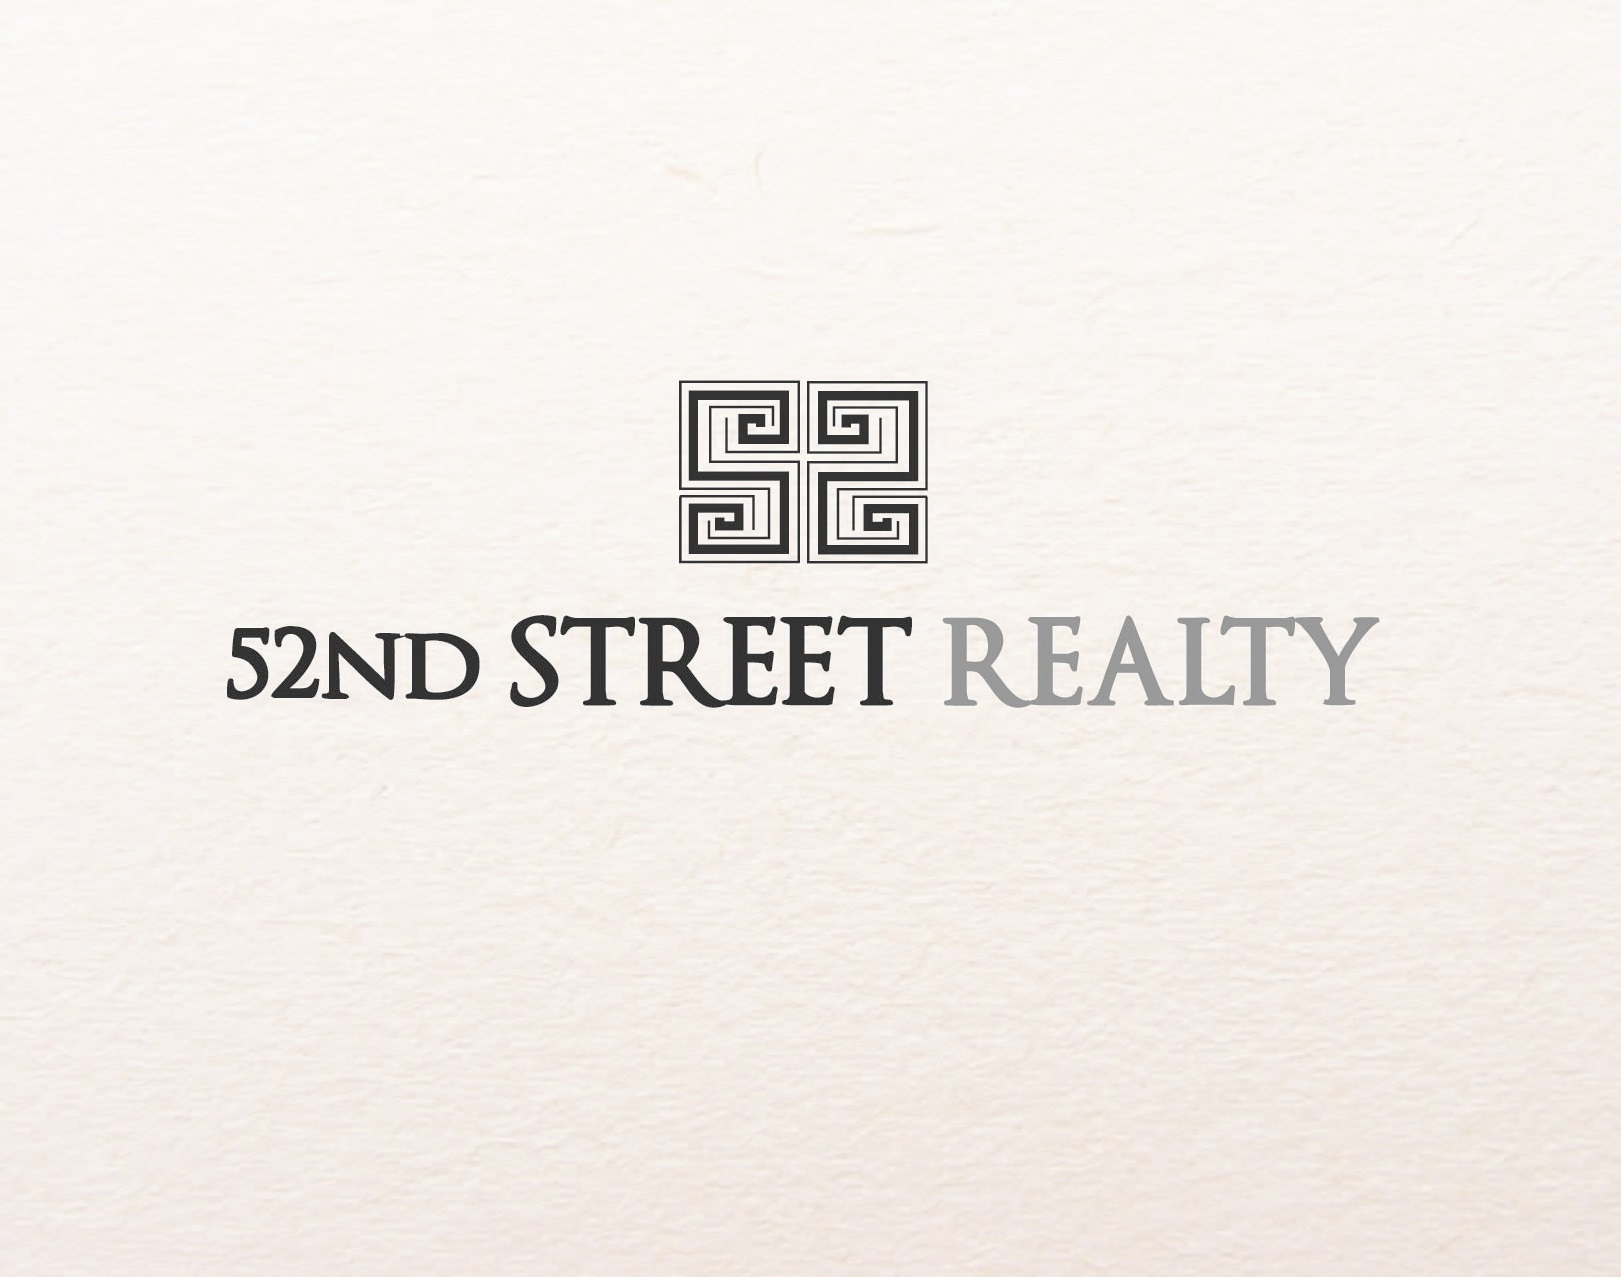 Logo Design by iwyn - Entry No. 83 in the Logo Design Contest 52nd Street Realty Logo Design.